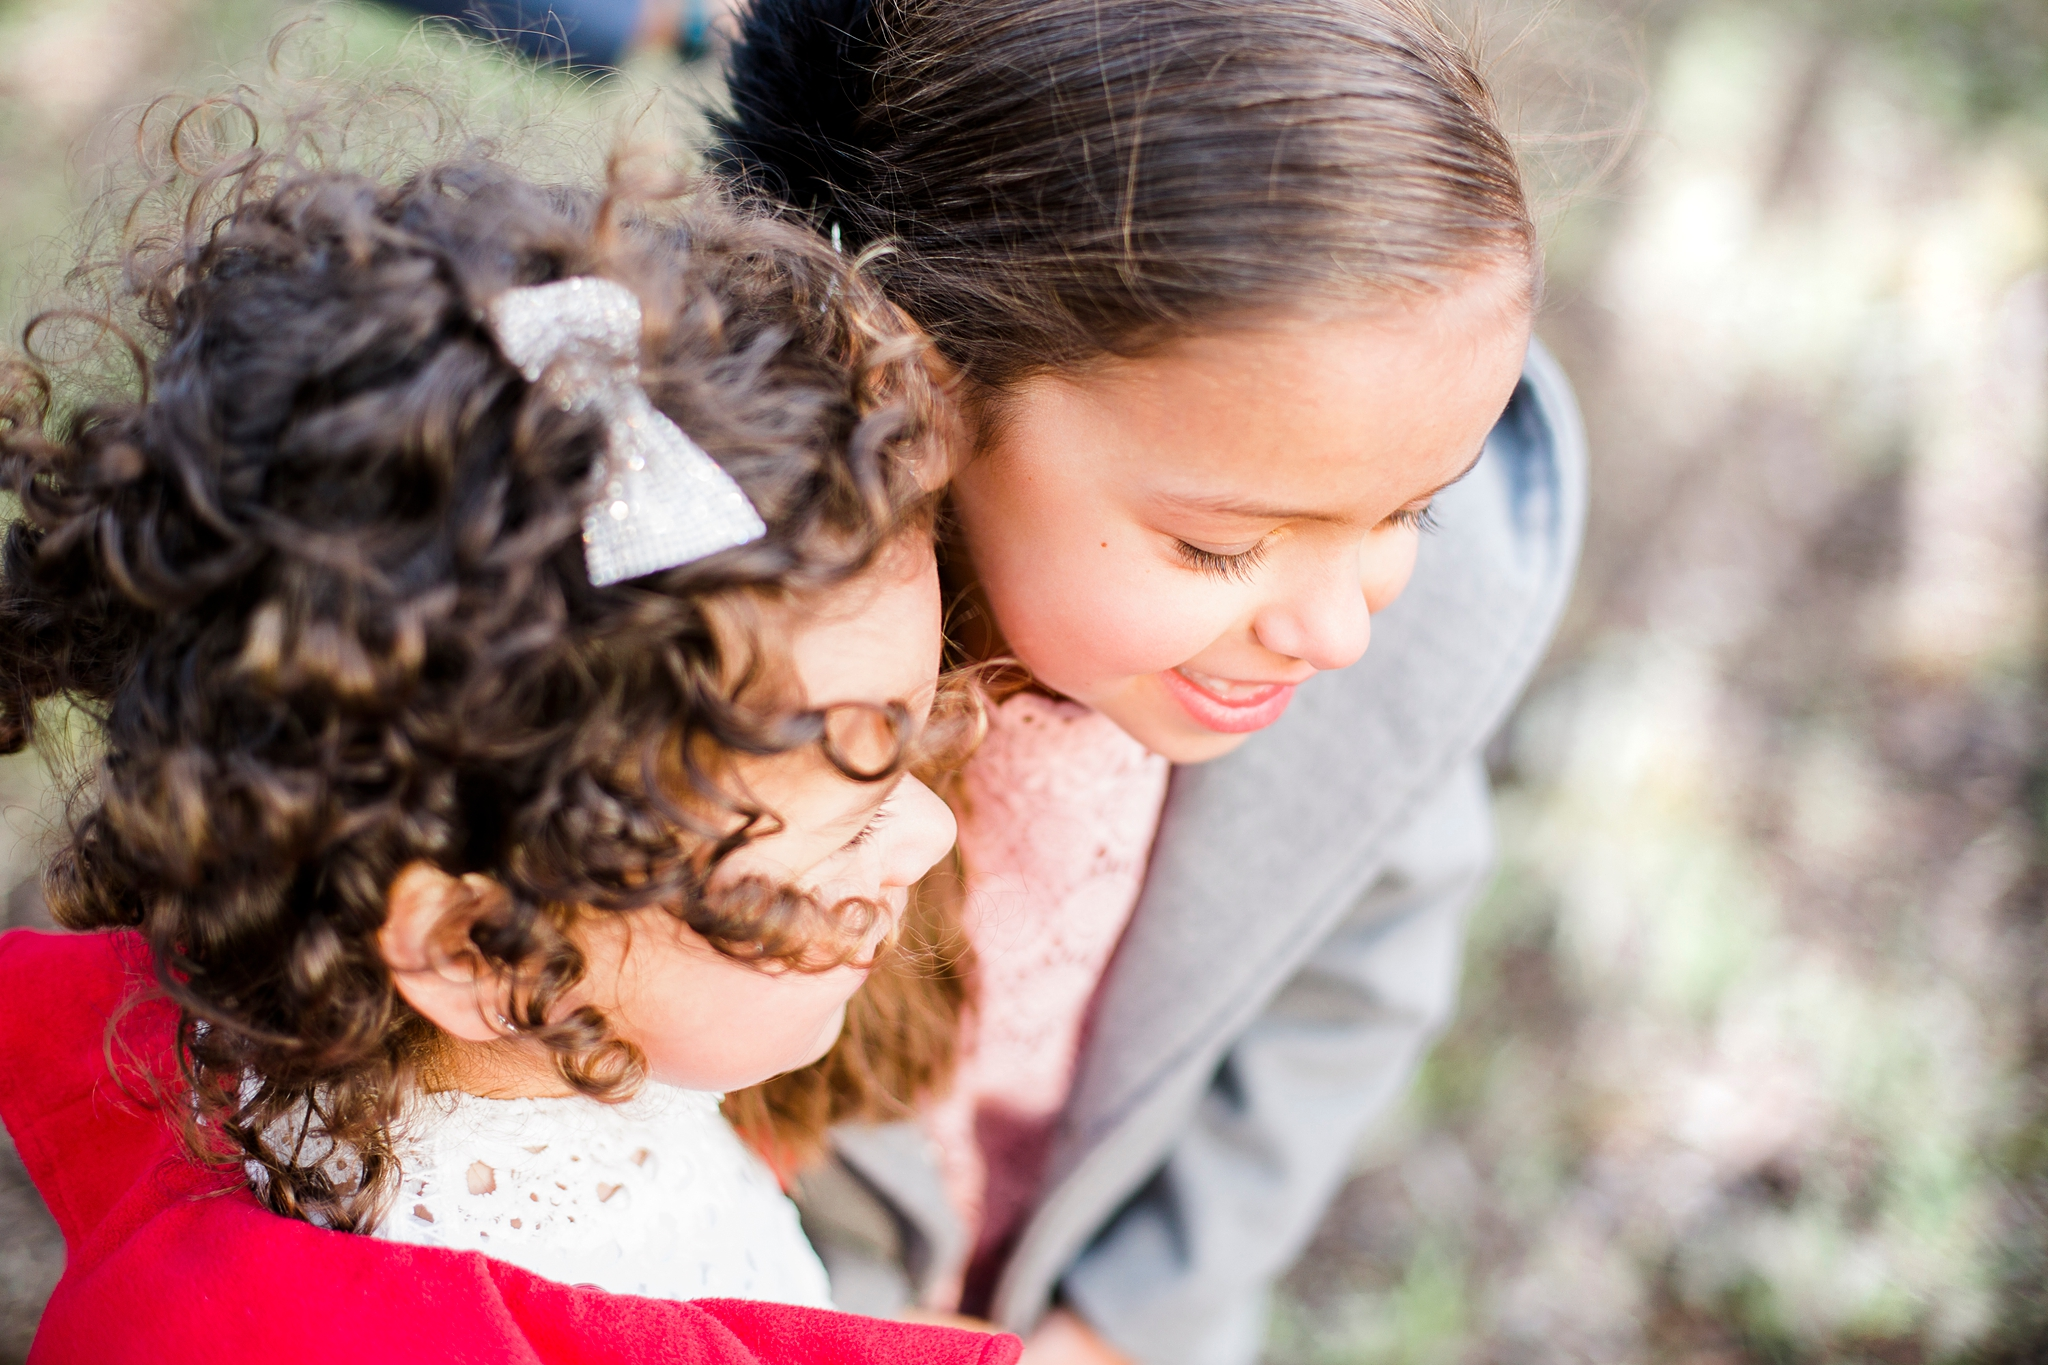 family-photography-jasmina-melbourne.jpg